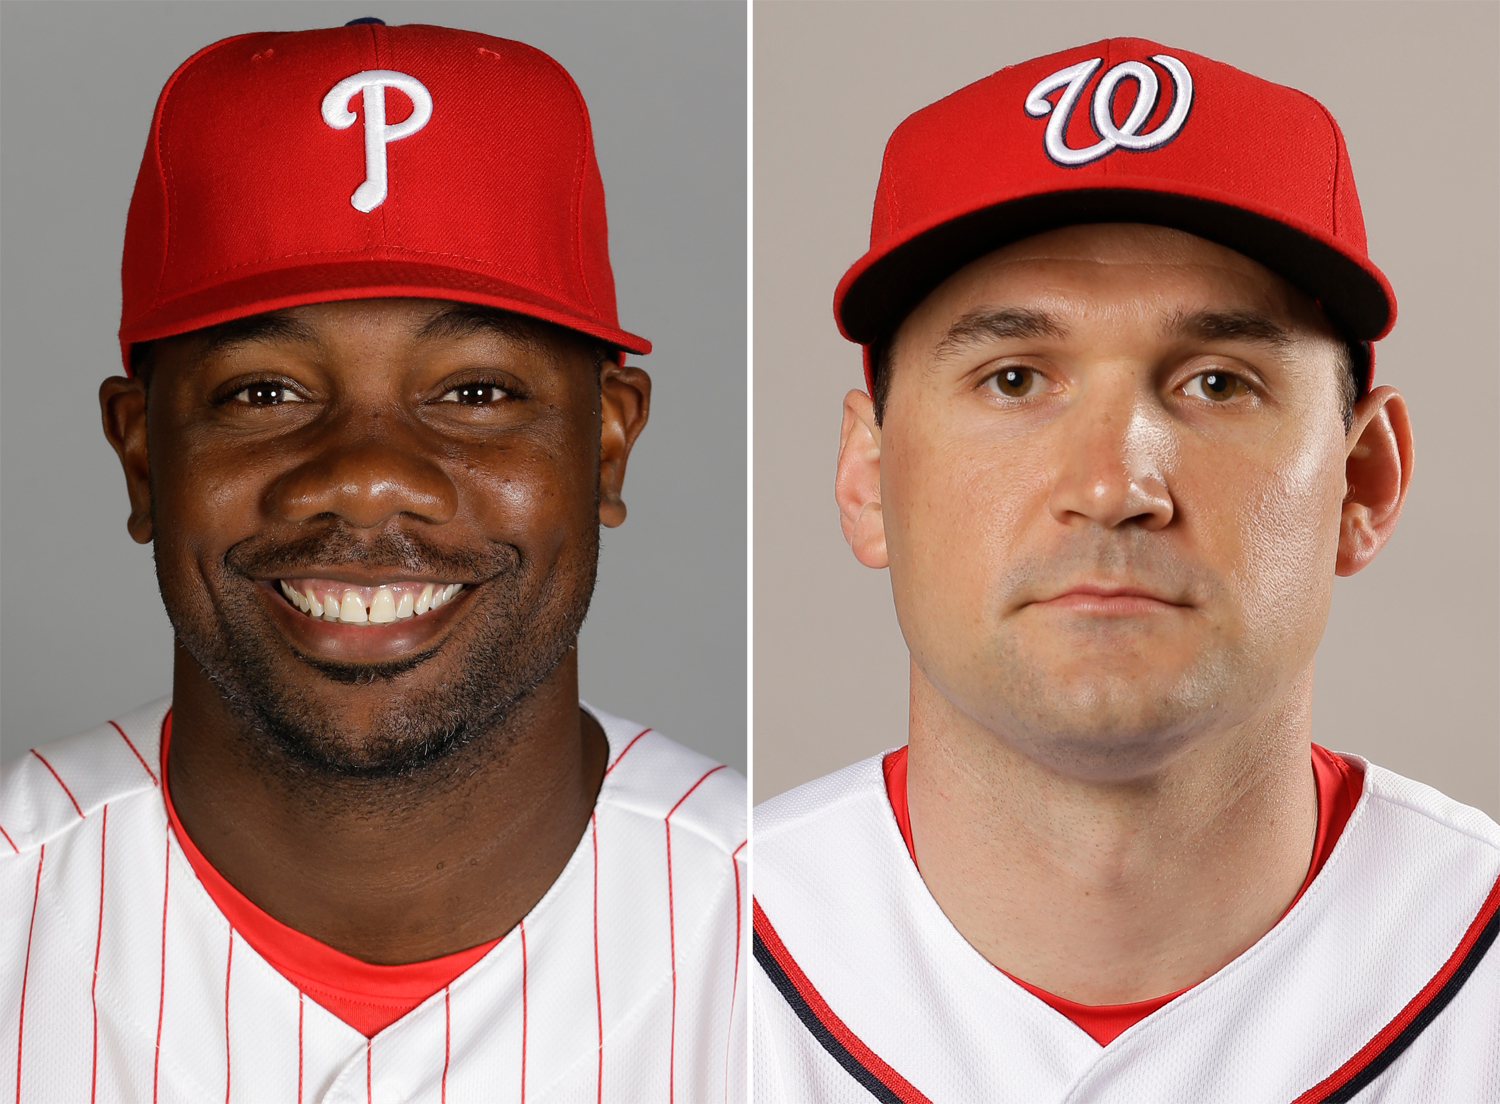 FILE - These are 2016 file photos showing Philadelphia Phillies' Ryan Howard, left, and Washington Nationals' Ryan Zimmerman. Howard and Zimmerman have been cleared by Major League Baseball of allegations they used human growth hormone. Pharmacist Charlie